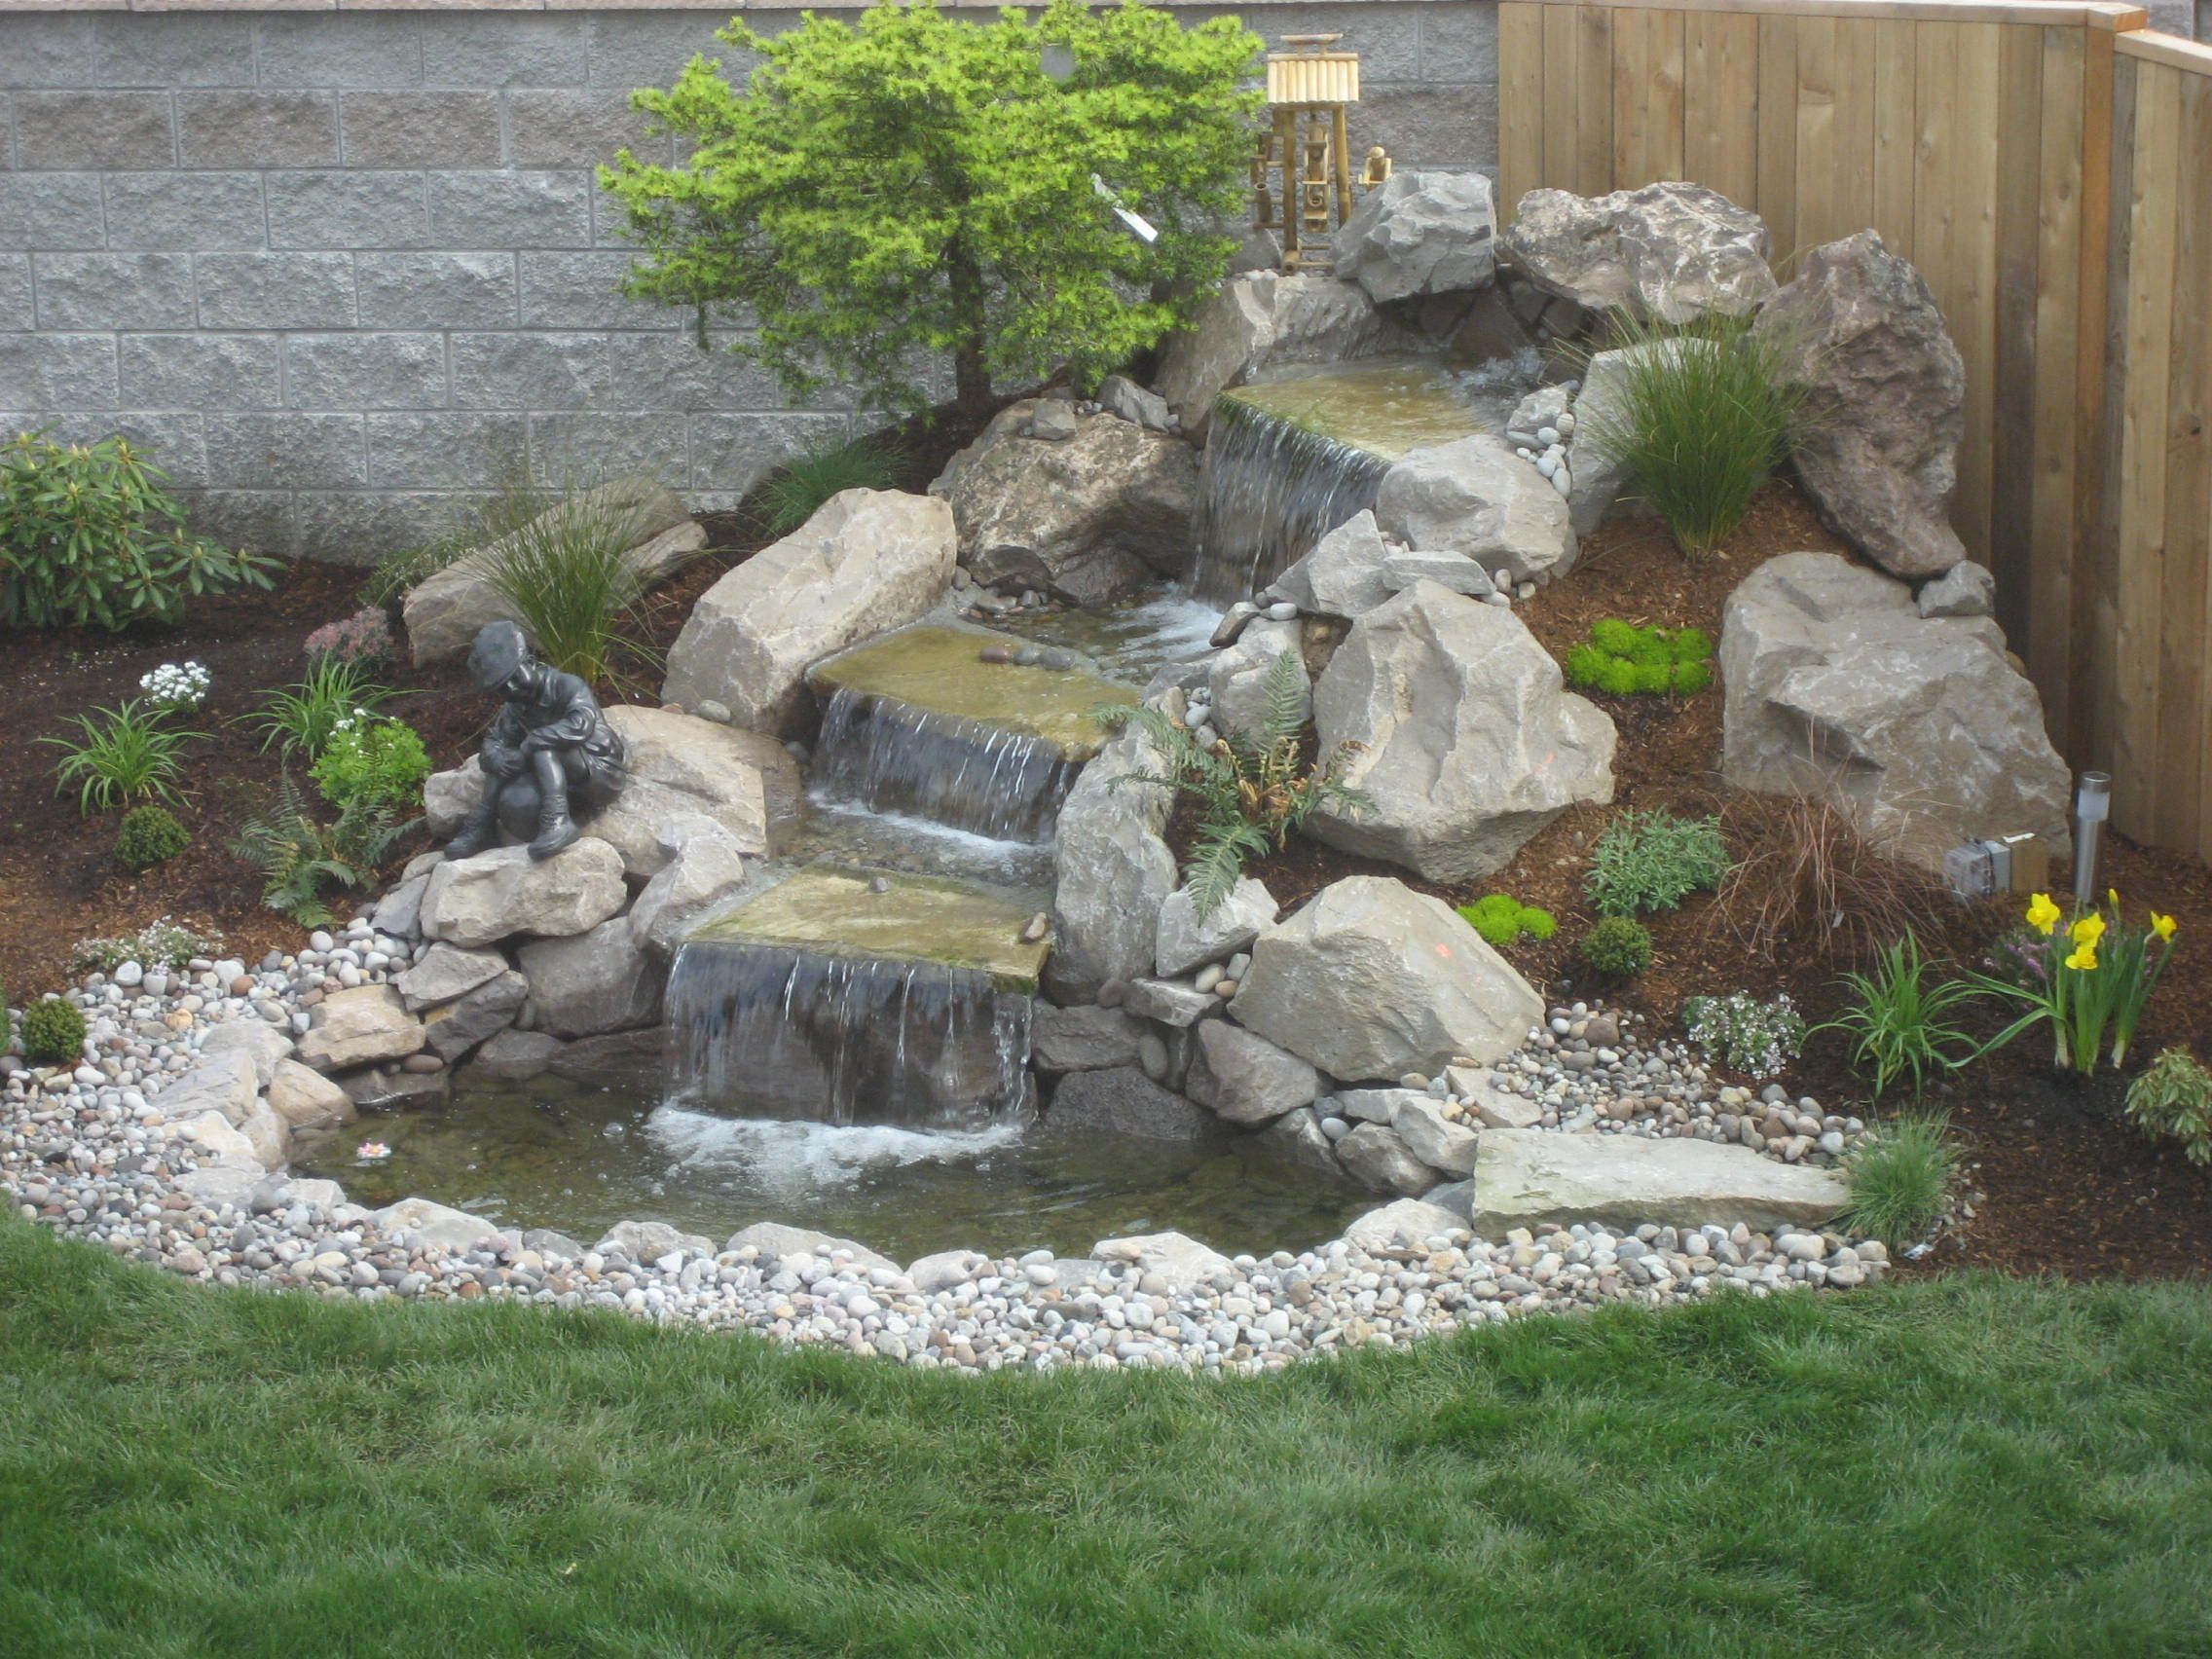 Landscape Garden | Landscape Design Advice: Creating Natural ...